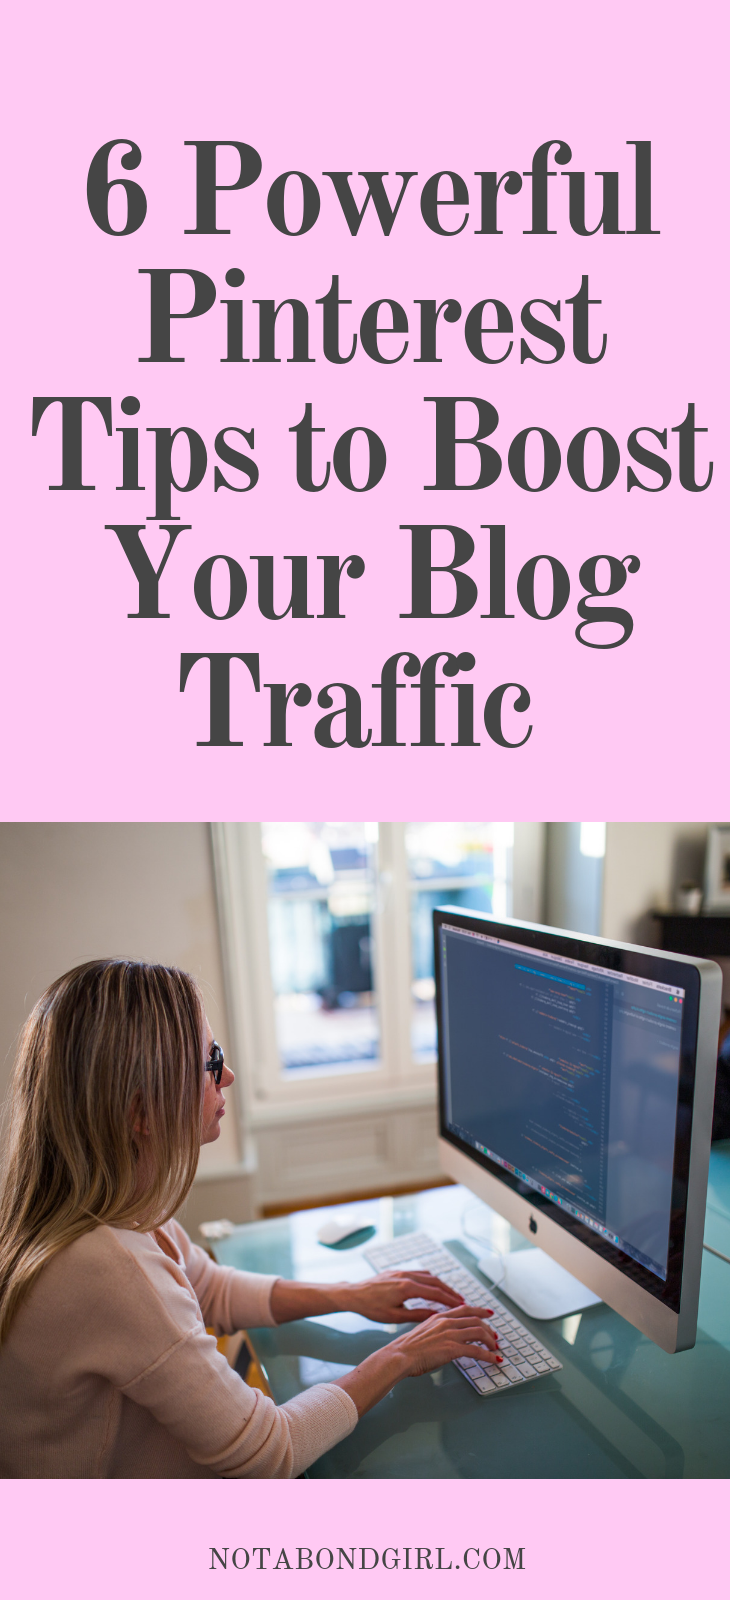 6 Powerful Pinterest Tips to Boost Your Blog Traffic